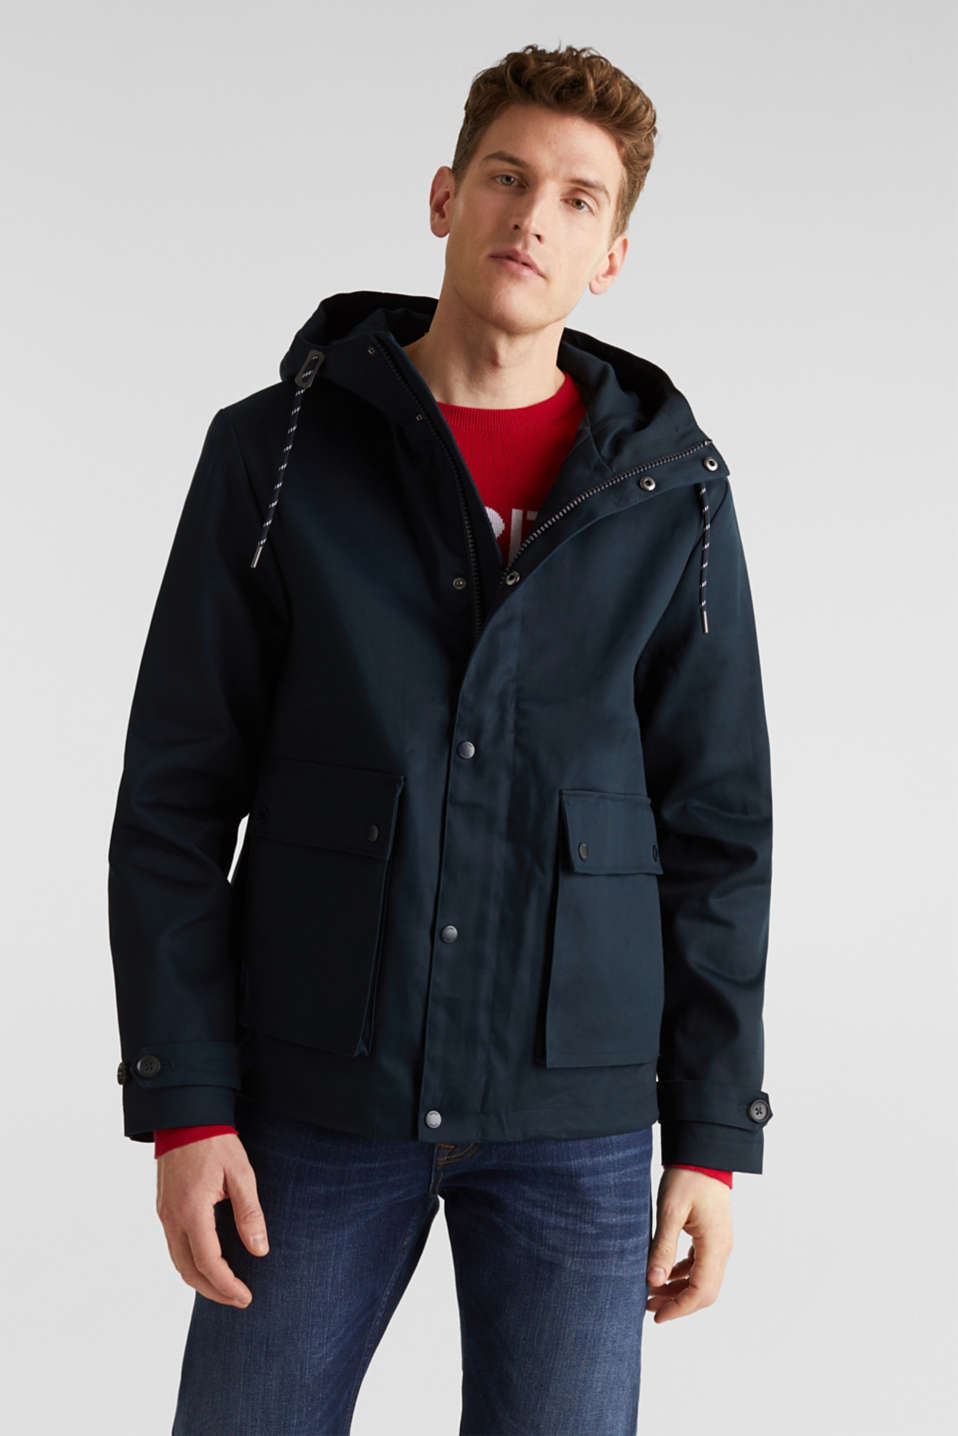 Esprit - Hooded jacket made of 100% cotton